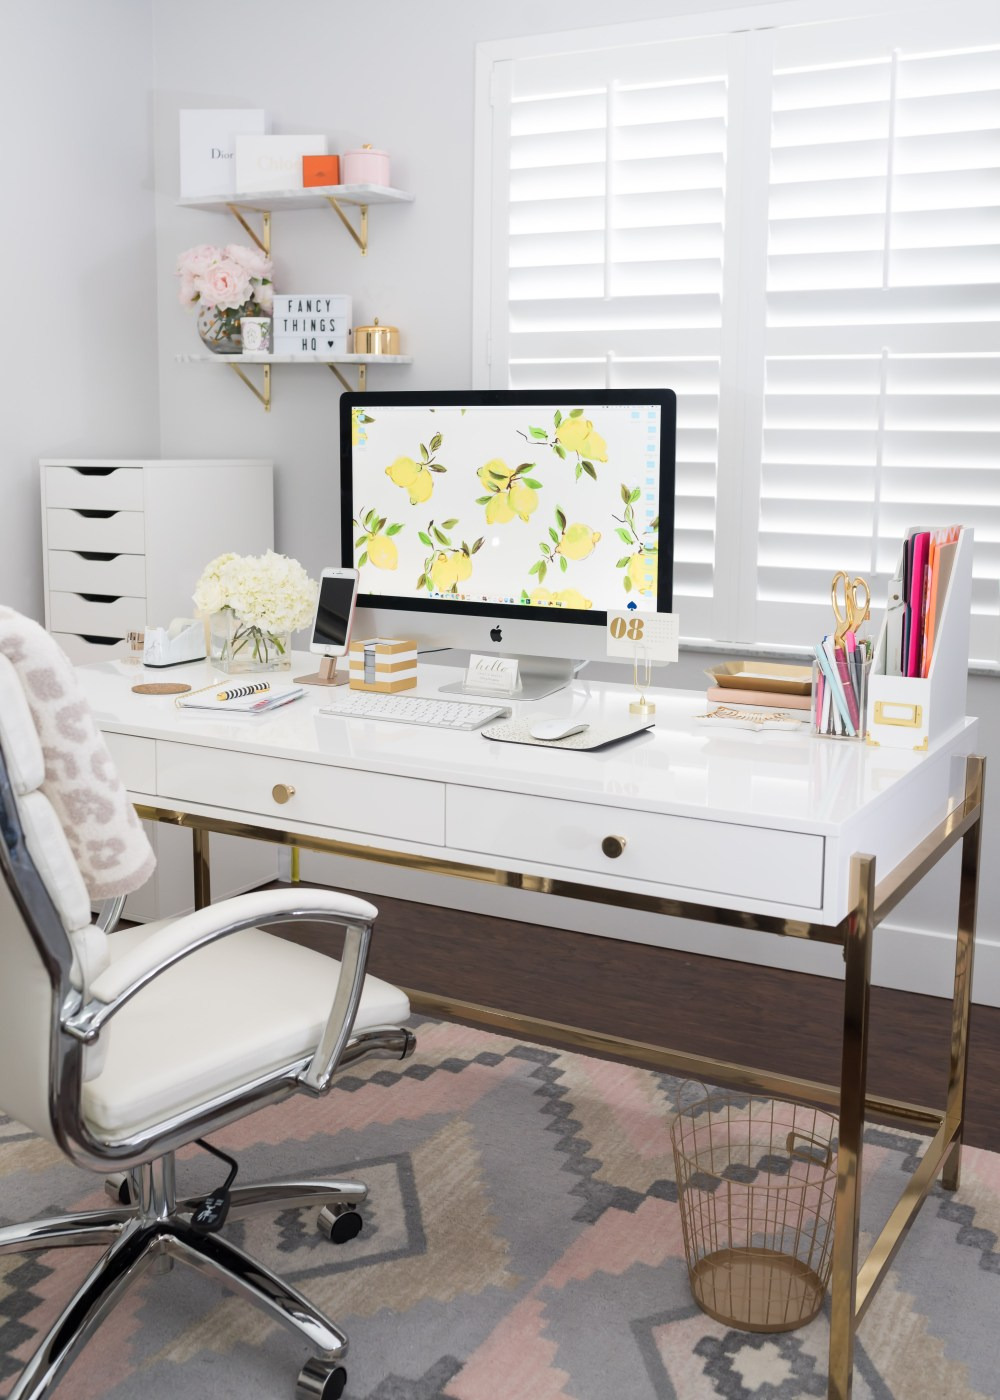 Park Avenue Writing Desk in White and Gold Overstock Fancy Things fice